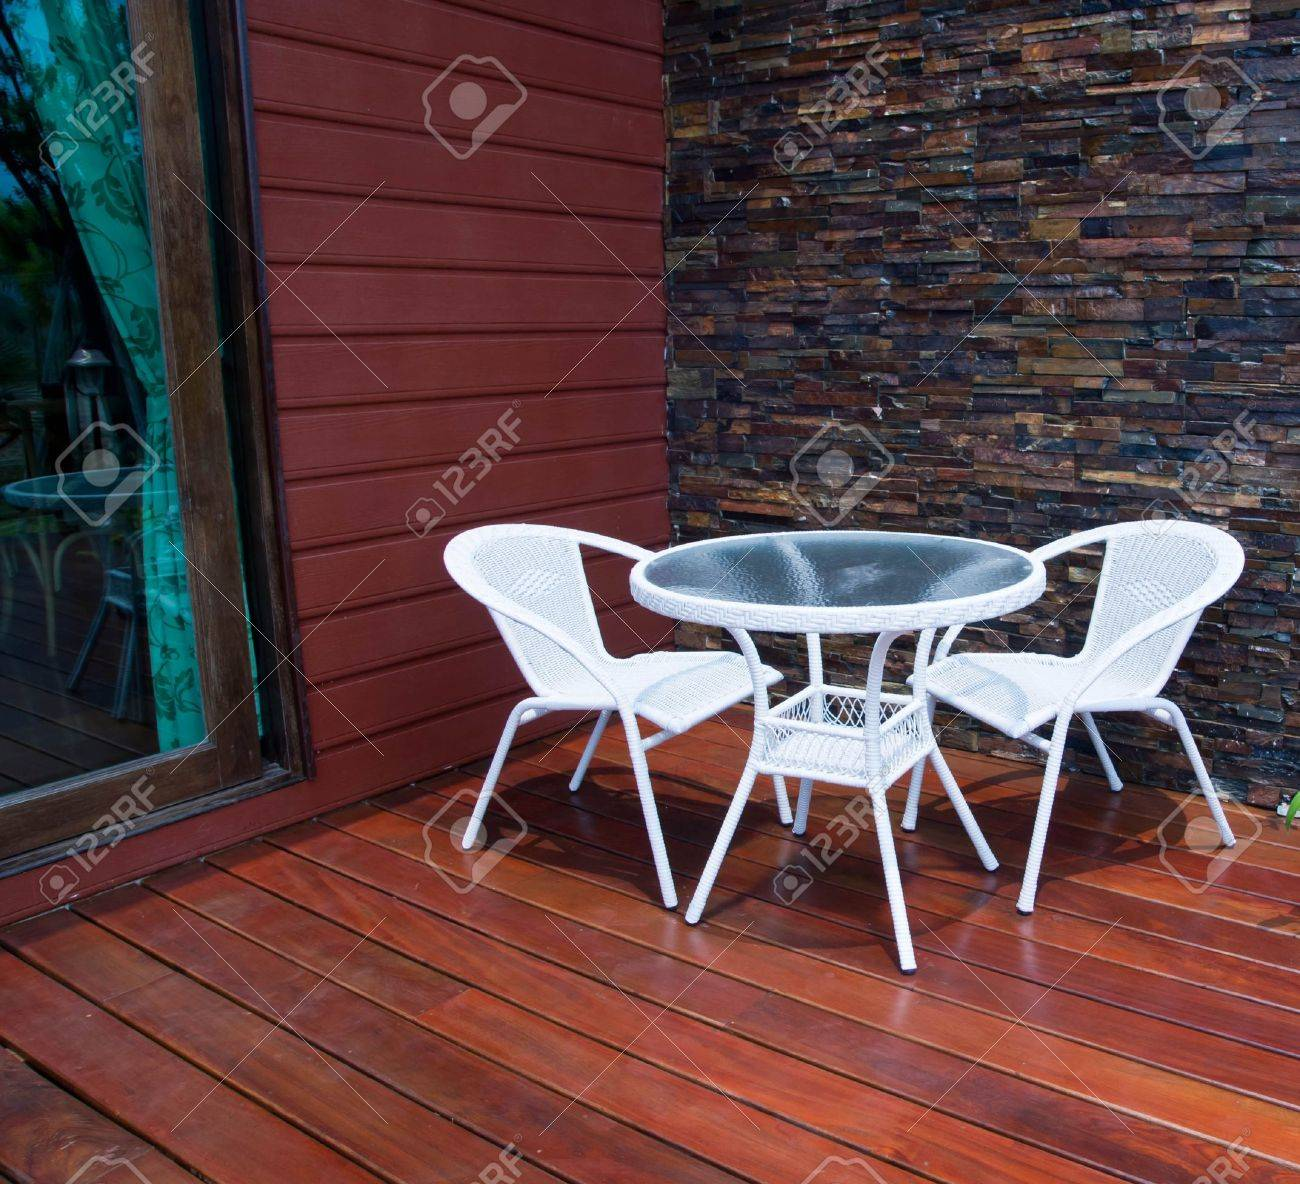 chair on the patio Stock Photo - 13694792